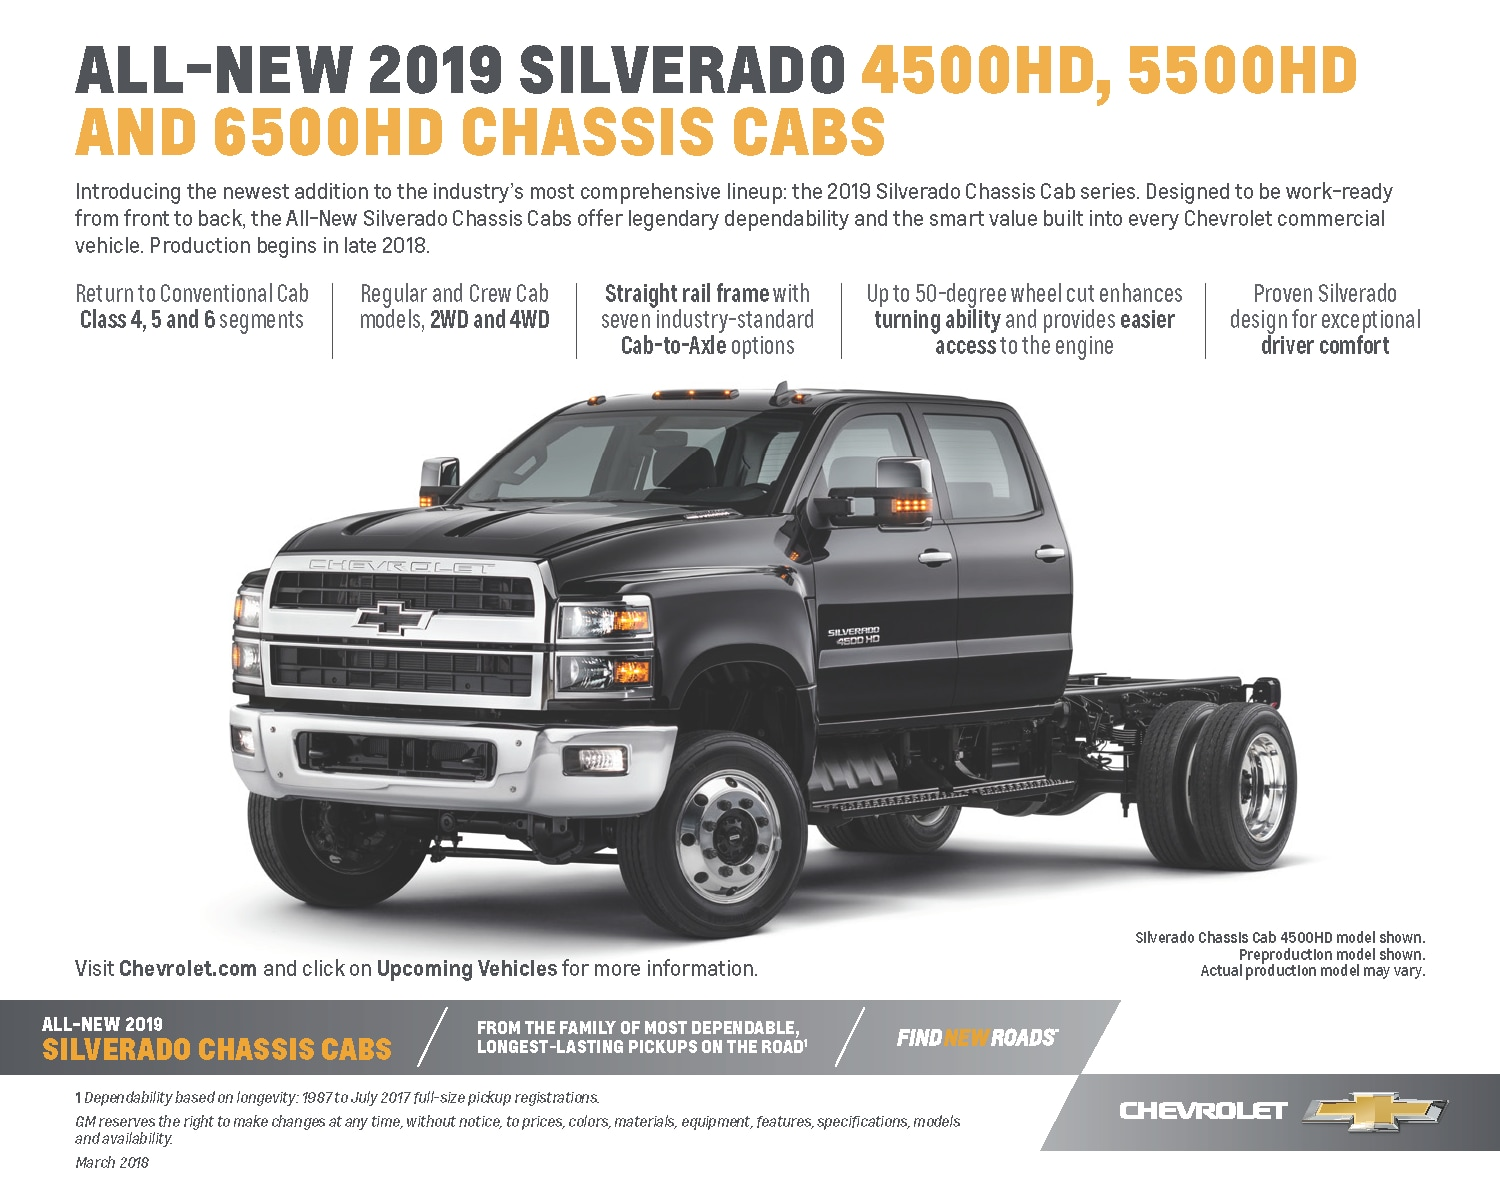 truck large iconic most pickup looks back of chevrolet designs at ltz its silverado default news models